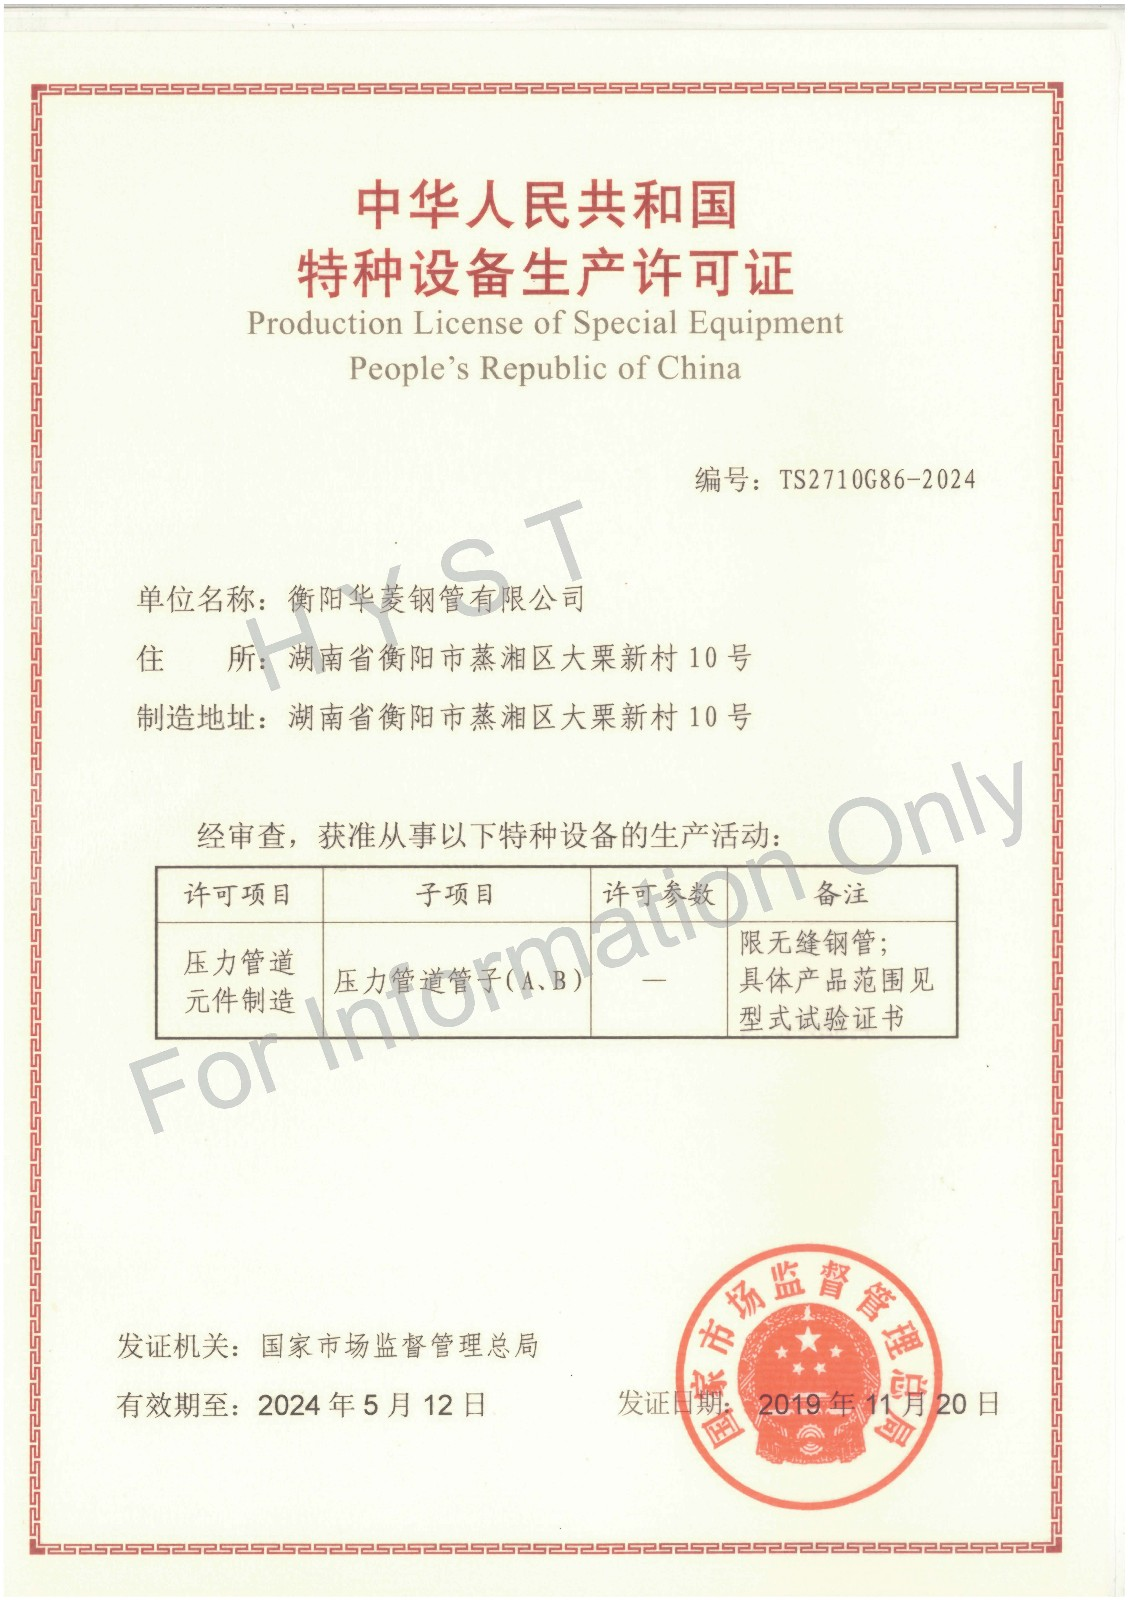 Production License of Special Equipment